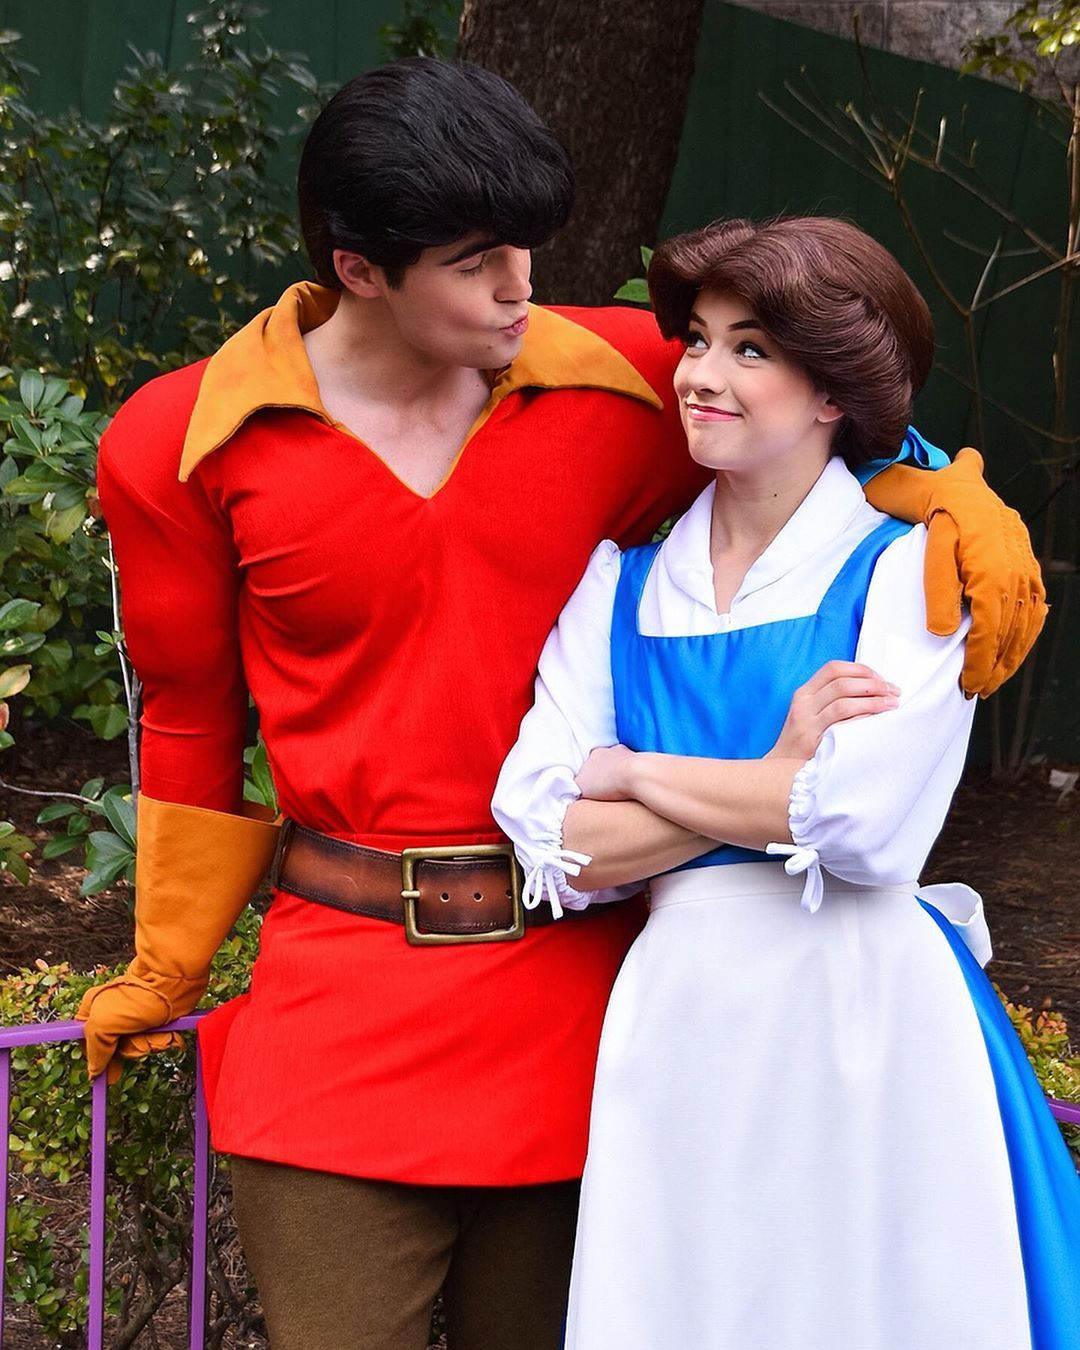 Pin By .1TRH1. On Beauty And The Beast Face Characters